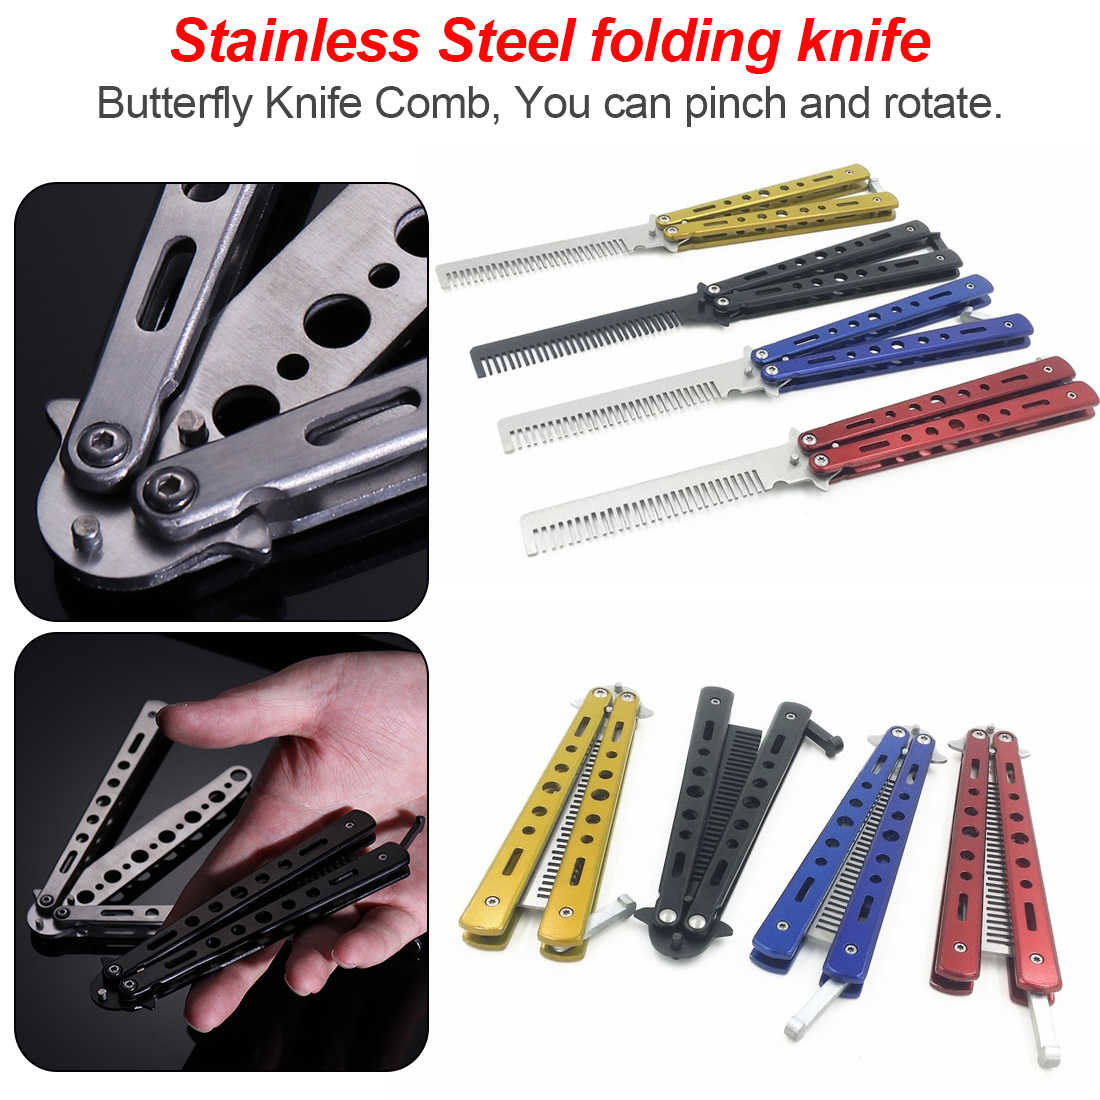 Colorful Stainless Steel Practice Butterfly In Knife Balisong Training Folding Knife Dull Tool CS Go Practice Knife Comb Tool